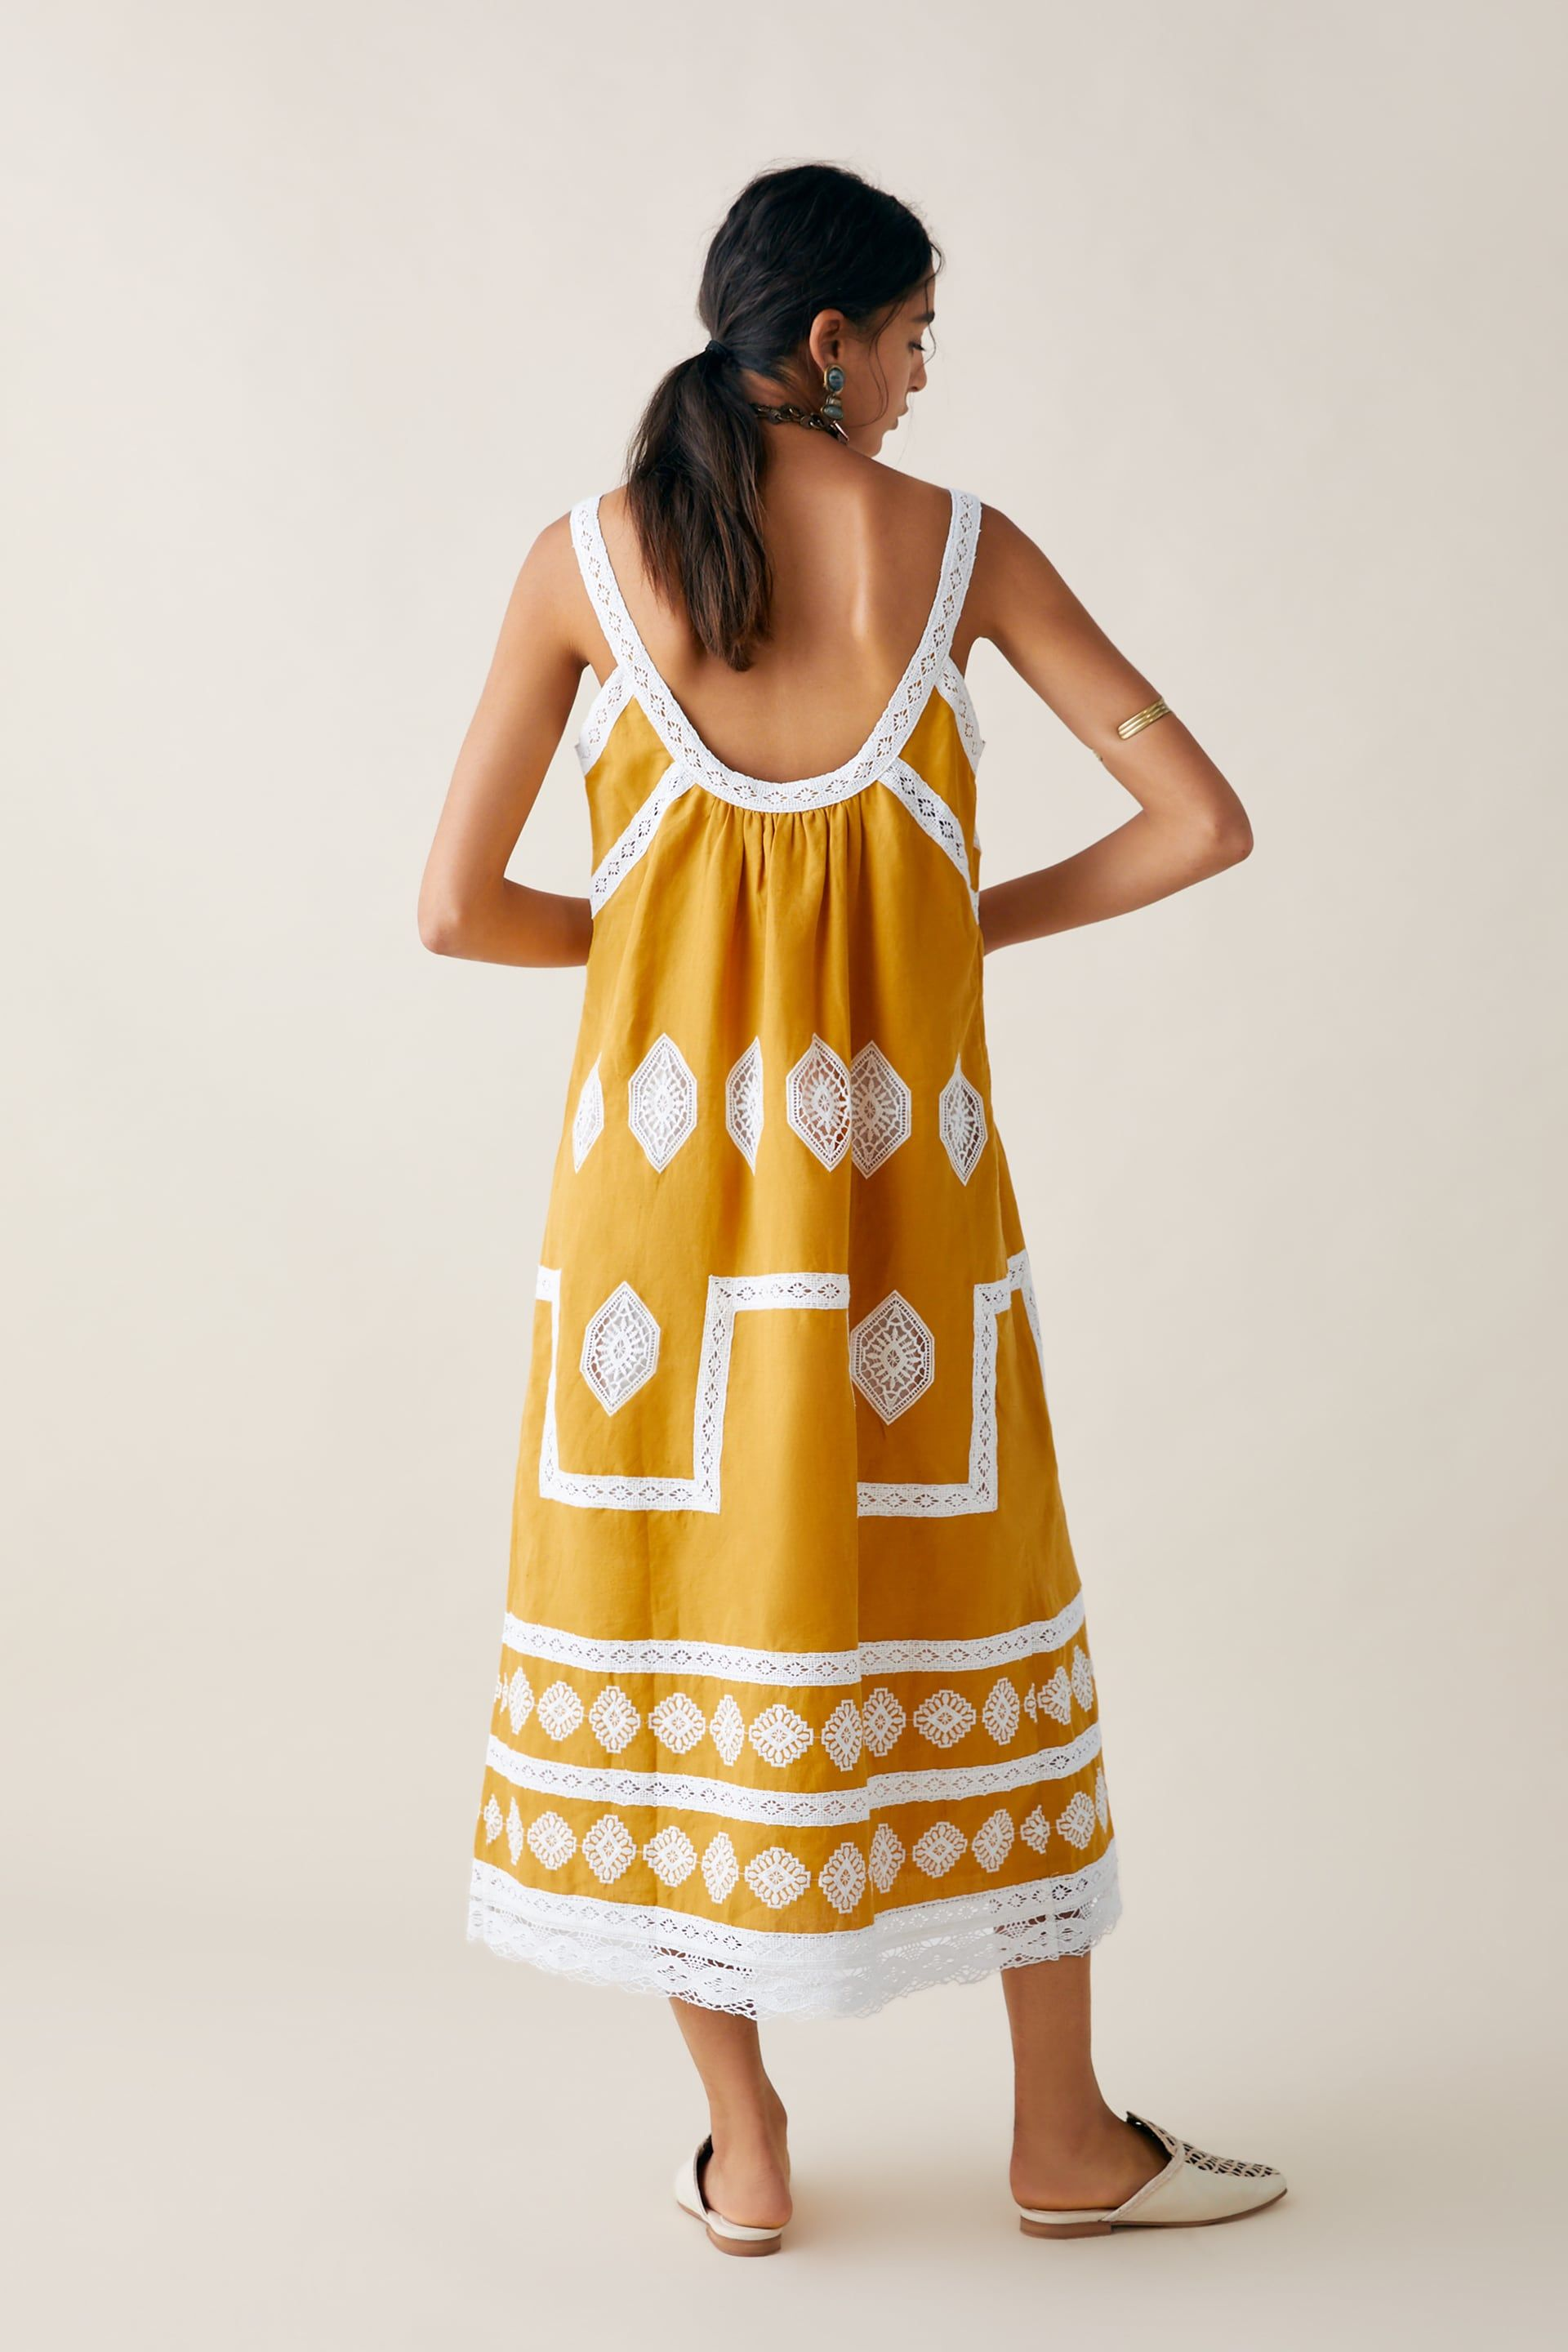 f81fc449 #yellow #dress #springfashiontrends #springfashion #embroidereddress # embroidery #mididress LIMITED EDITION ZARA STUDIO EMBROIDERED DRESS from  Zara